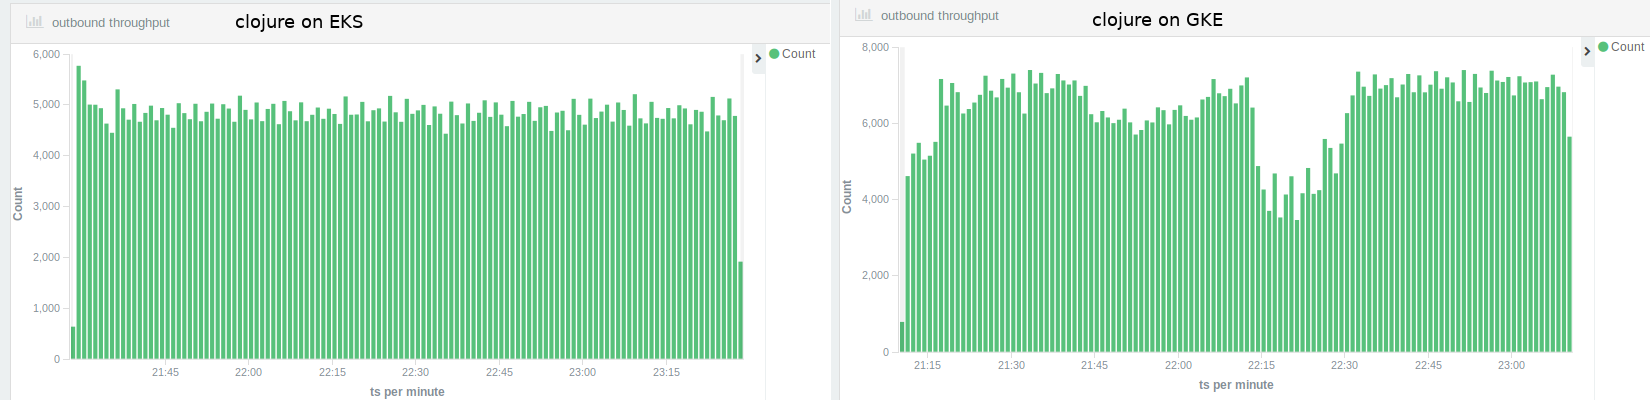 Clojure throughput EKS vs GKE